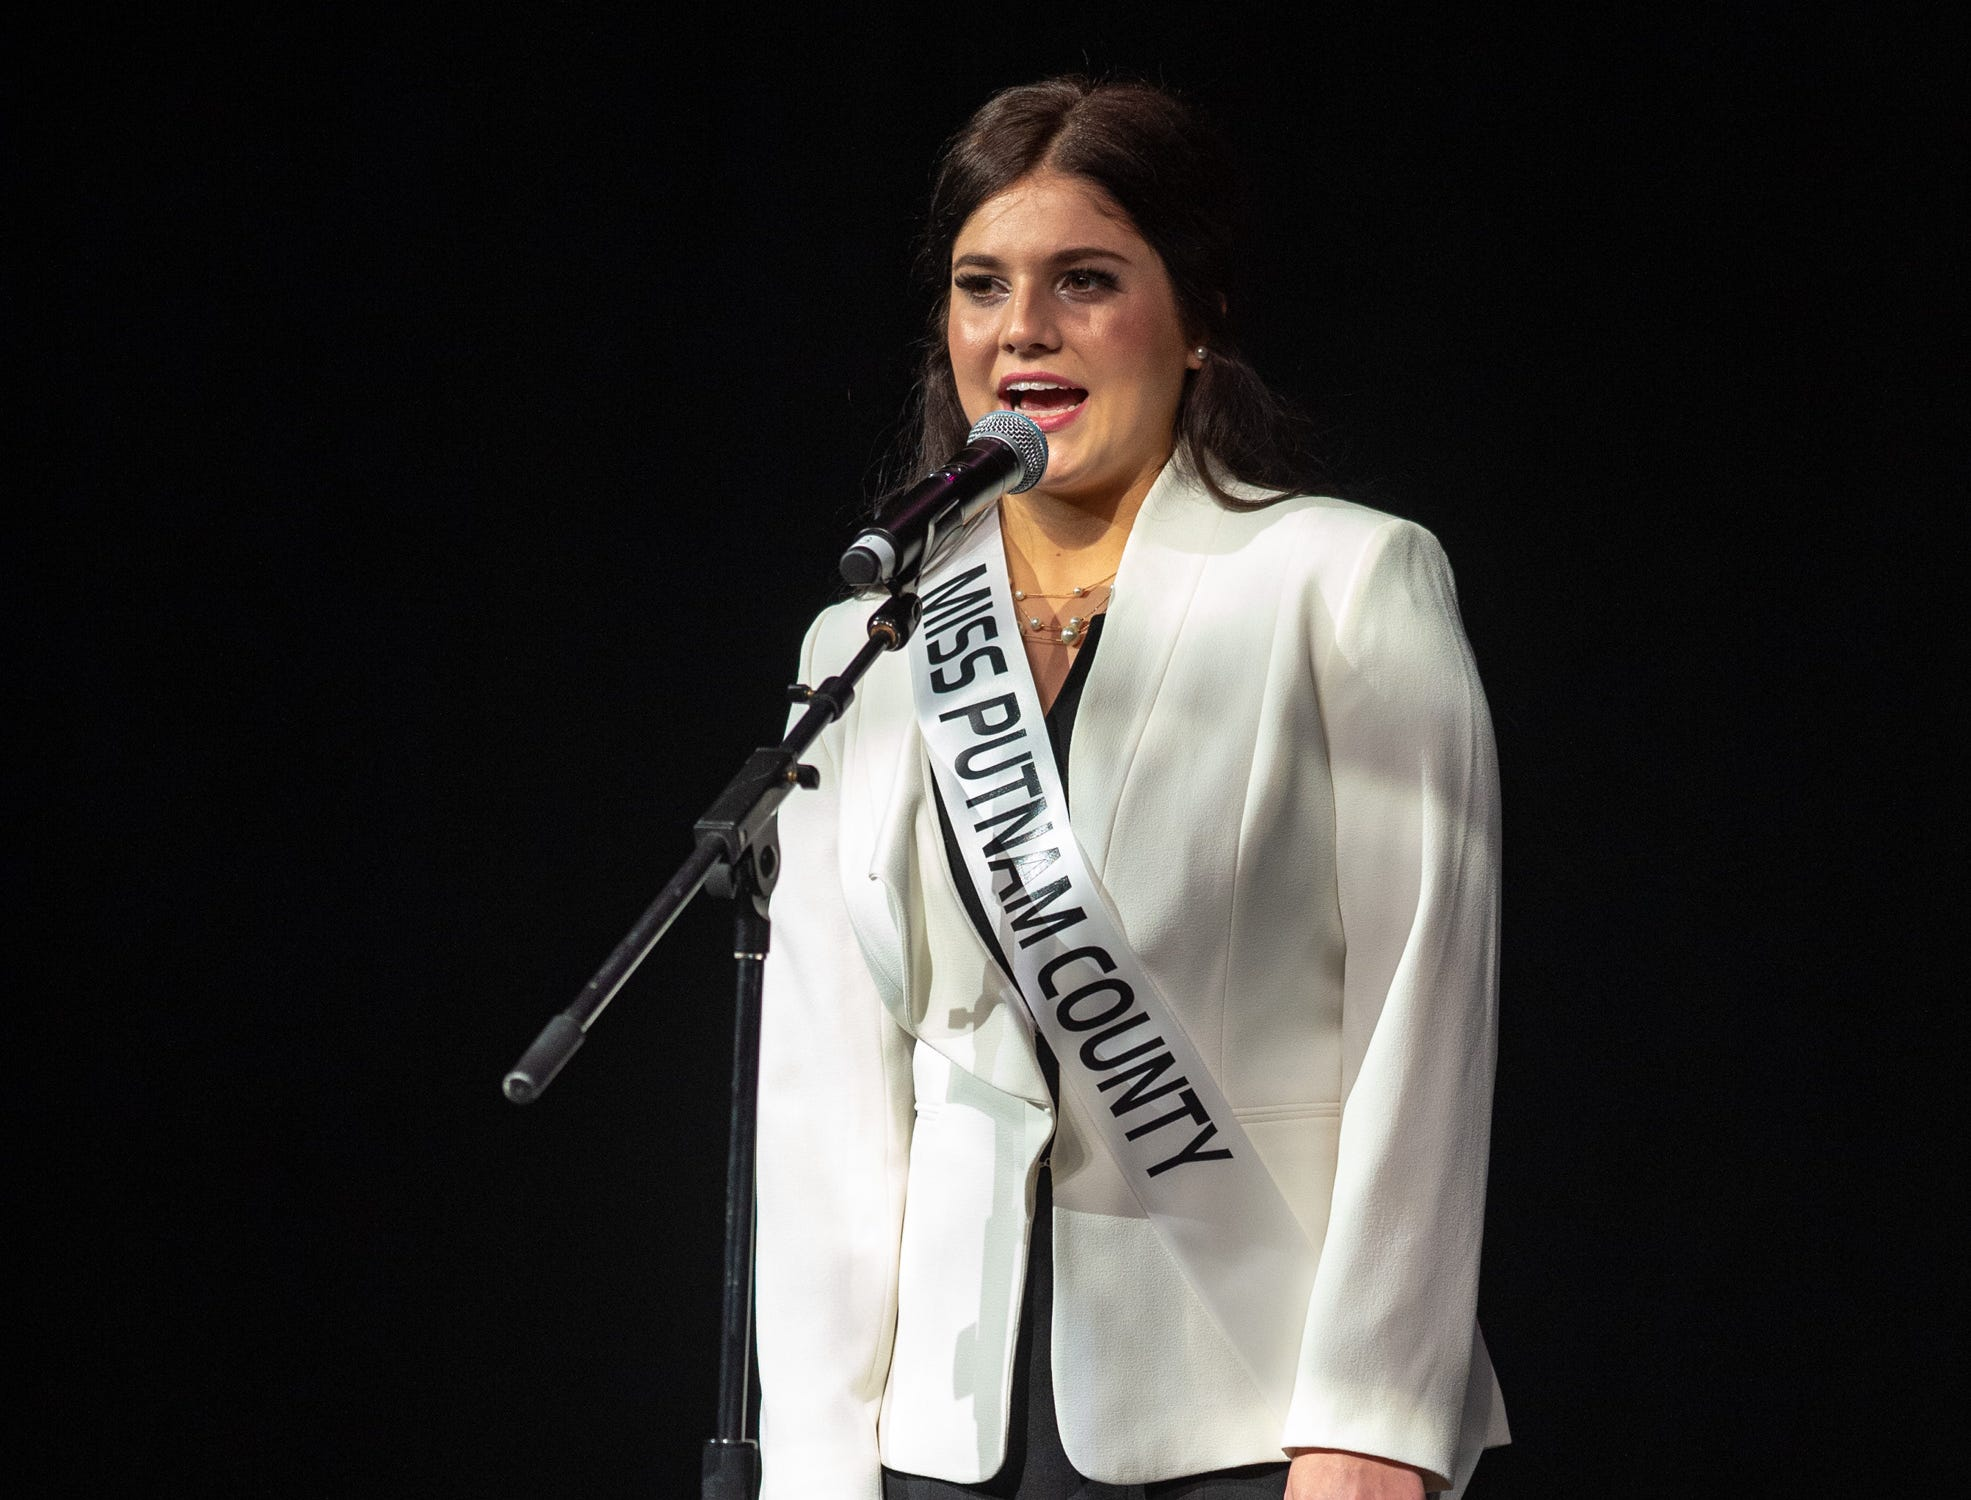 Miss Putnam County, Raegan Bowling, during the 61st Indiana State Fair Queen Pageant at the Indiana State Fairgrounds in Indianapolis on Sunday, Jan. 6, 2019.